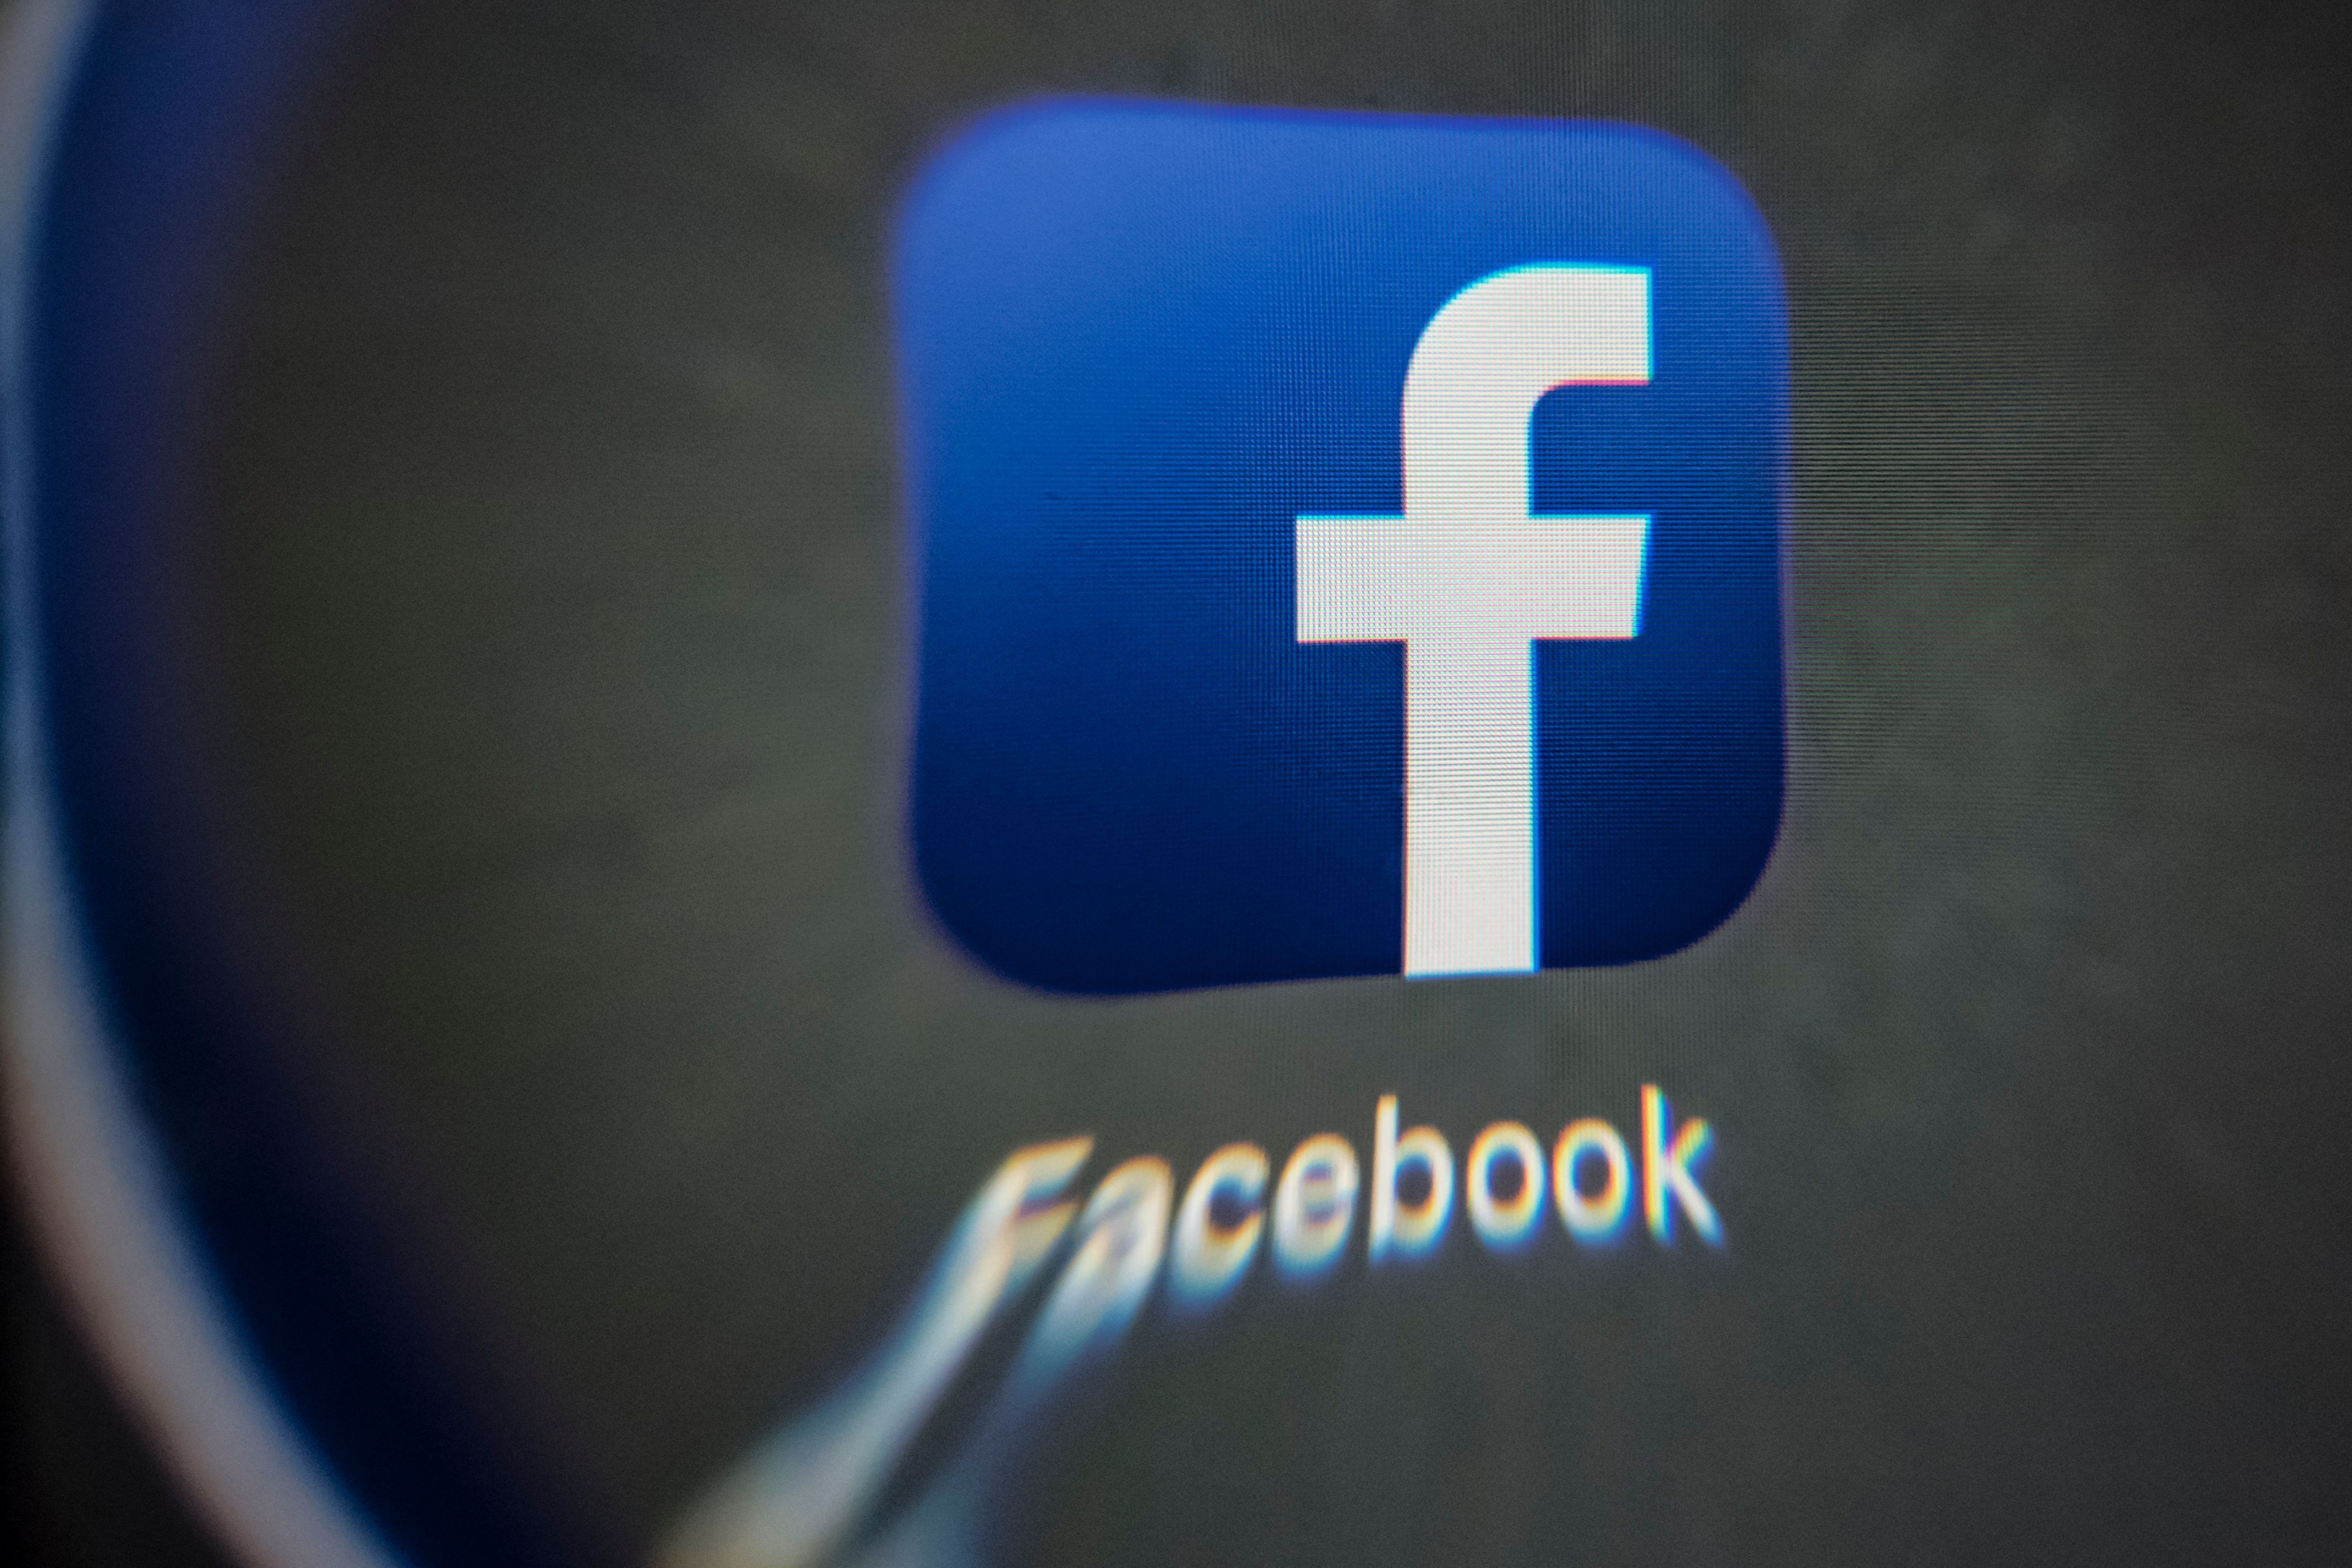 Facebook's Bold Move Spurs D.C. to Confront Its Crypto Dithering